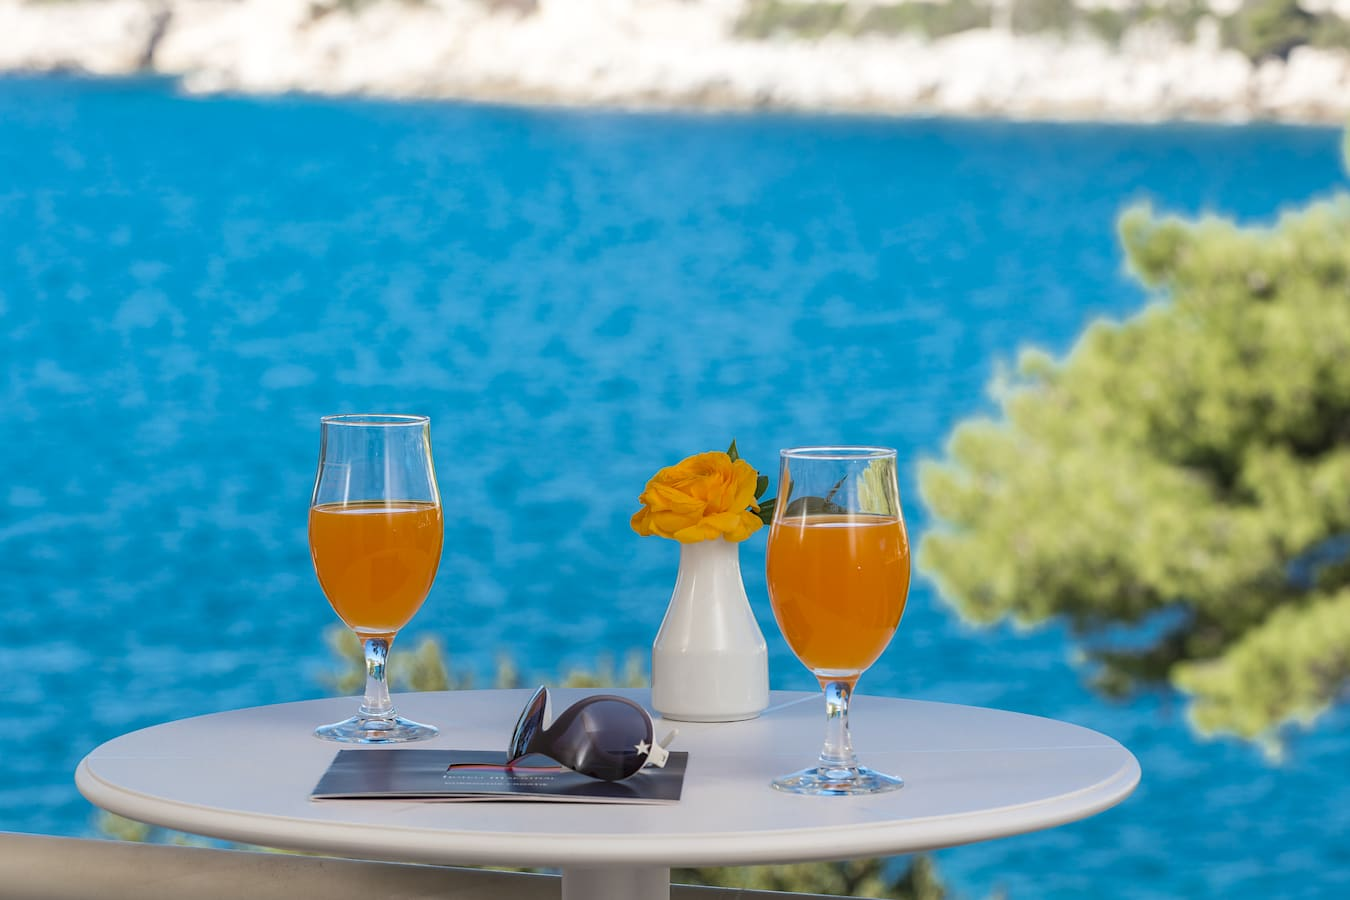 splendid-hotel-dubrovnik-view-from-room.jpg